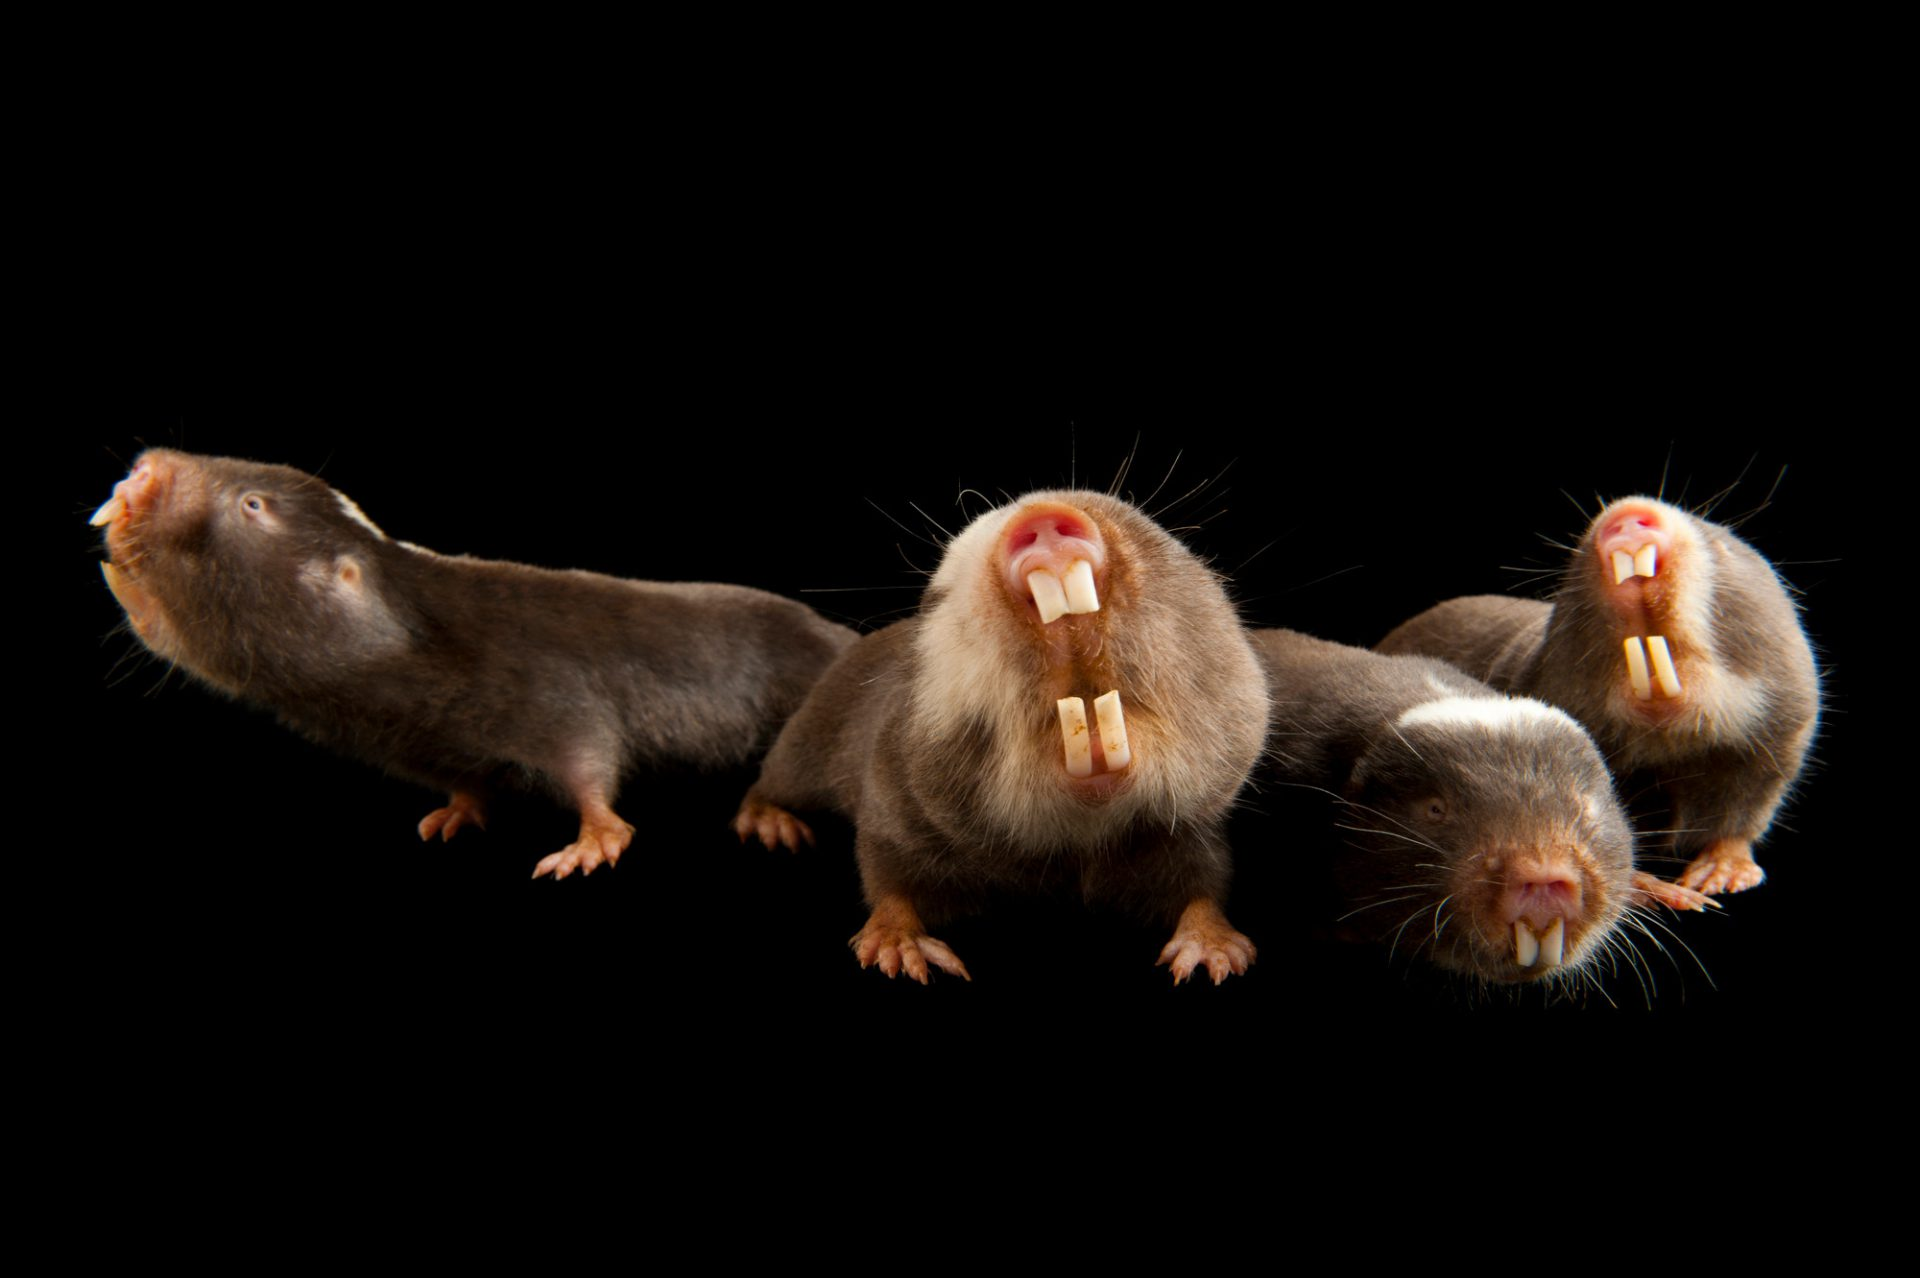 Damaraland mole rats (Fukomys damarensis) at the Houston Zoo. These burrowing rodents from sub-Saharan Africa are one of only two known eusocial mammals.